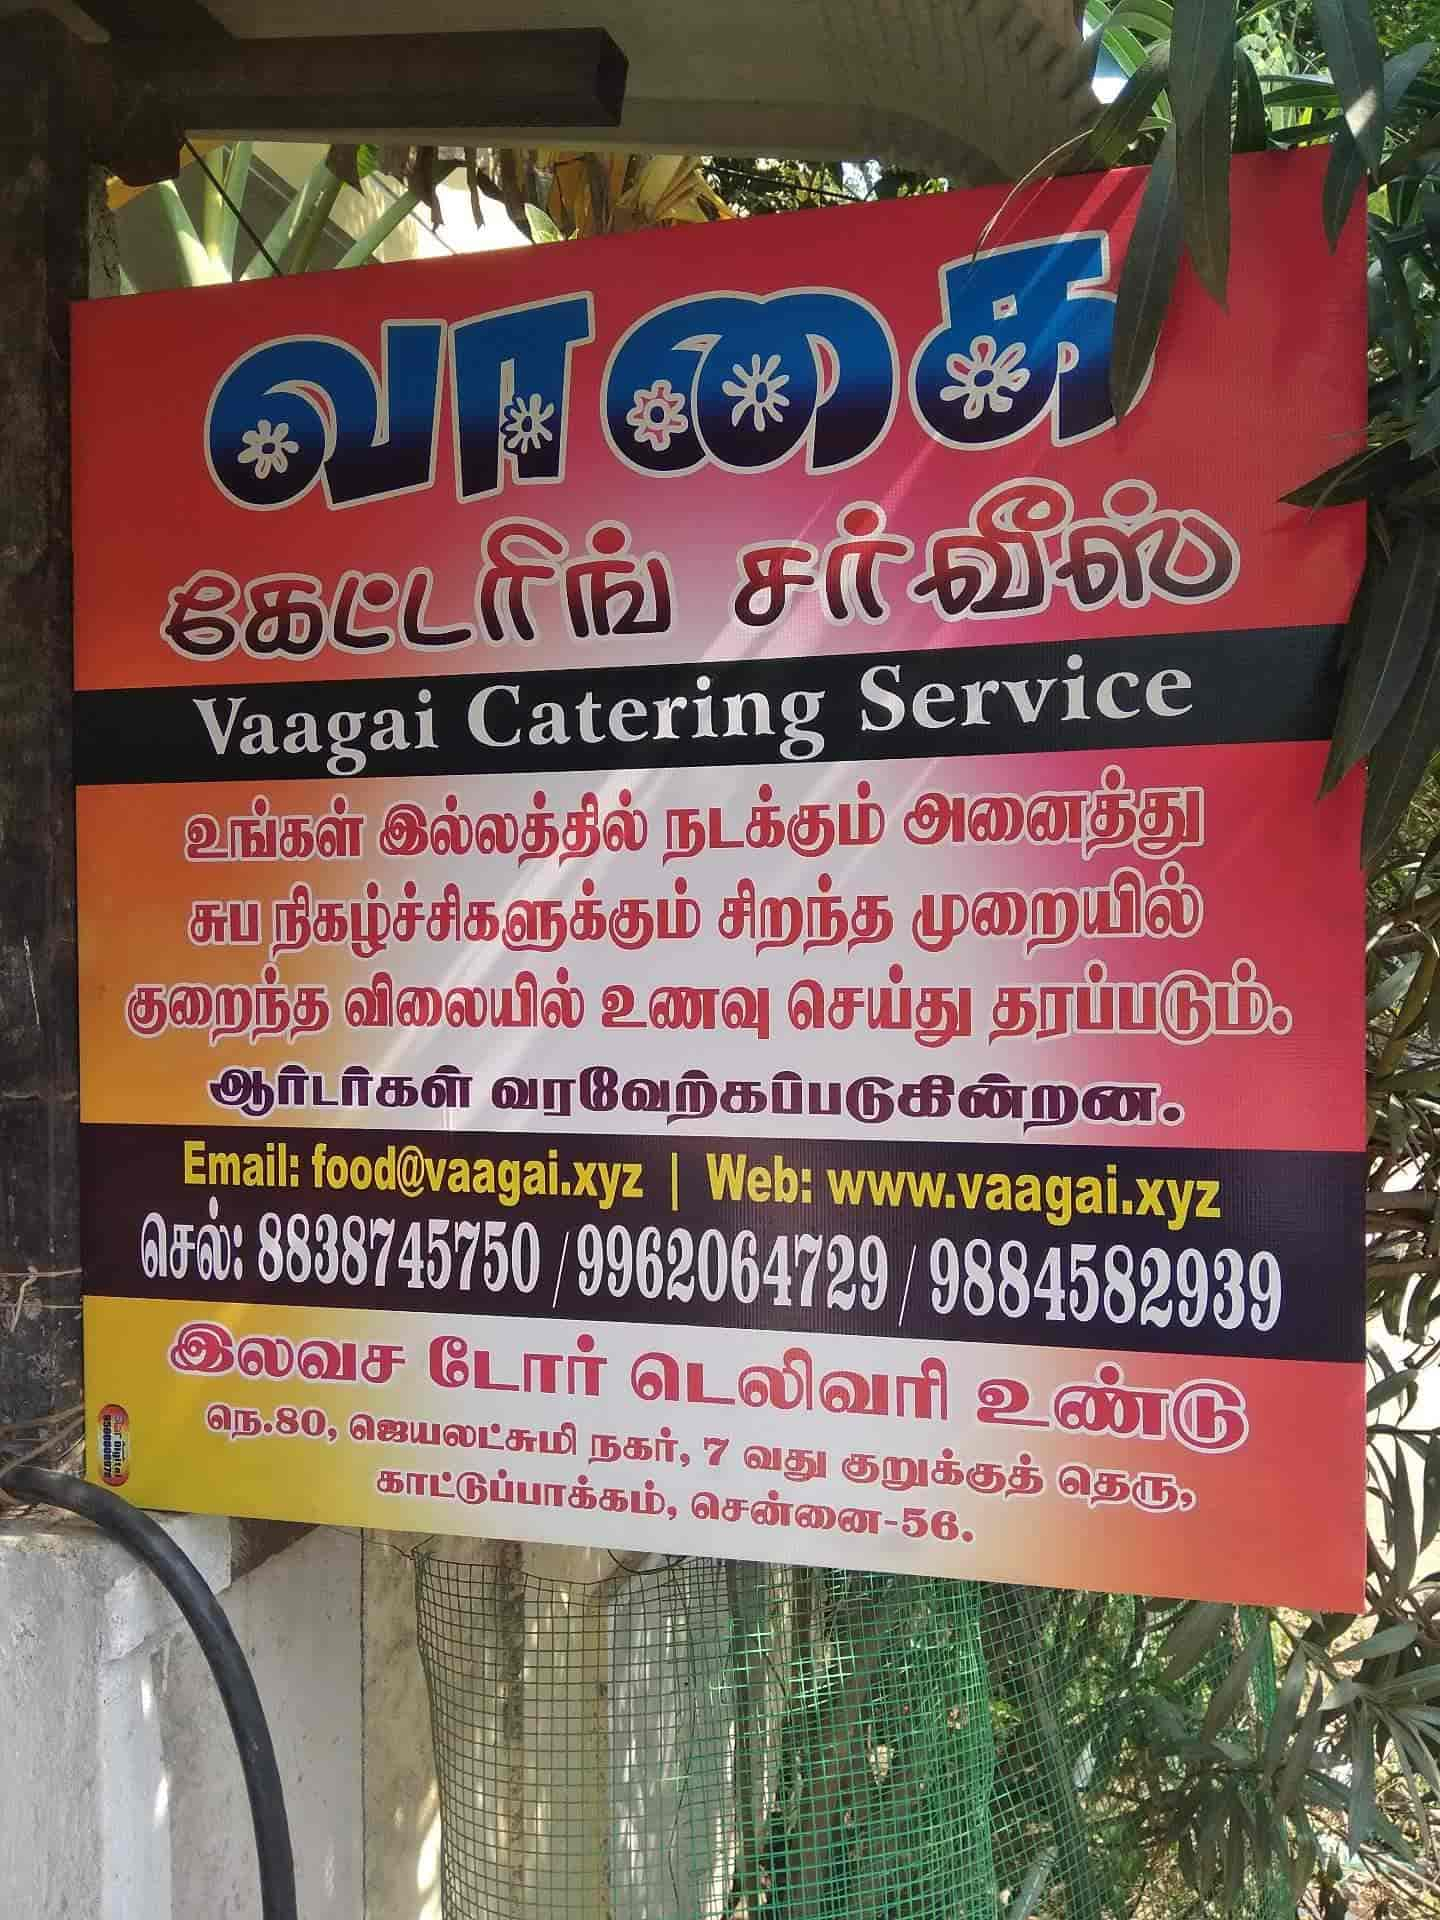 Vaagai Catering Service Event Organizing Photos, Kattupakkam